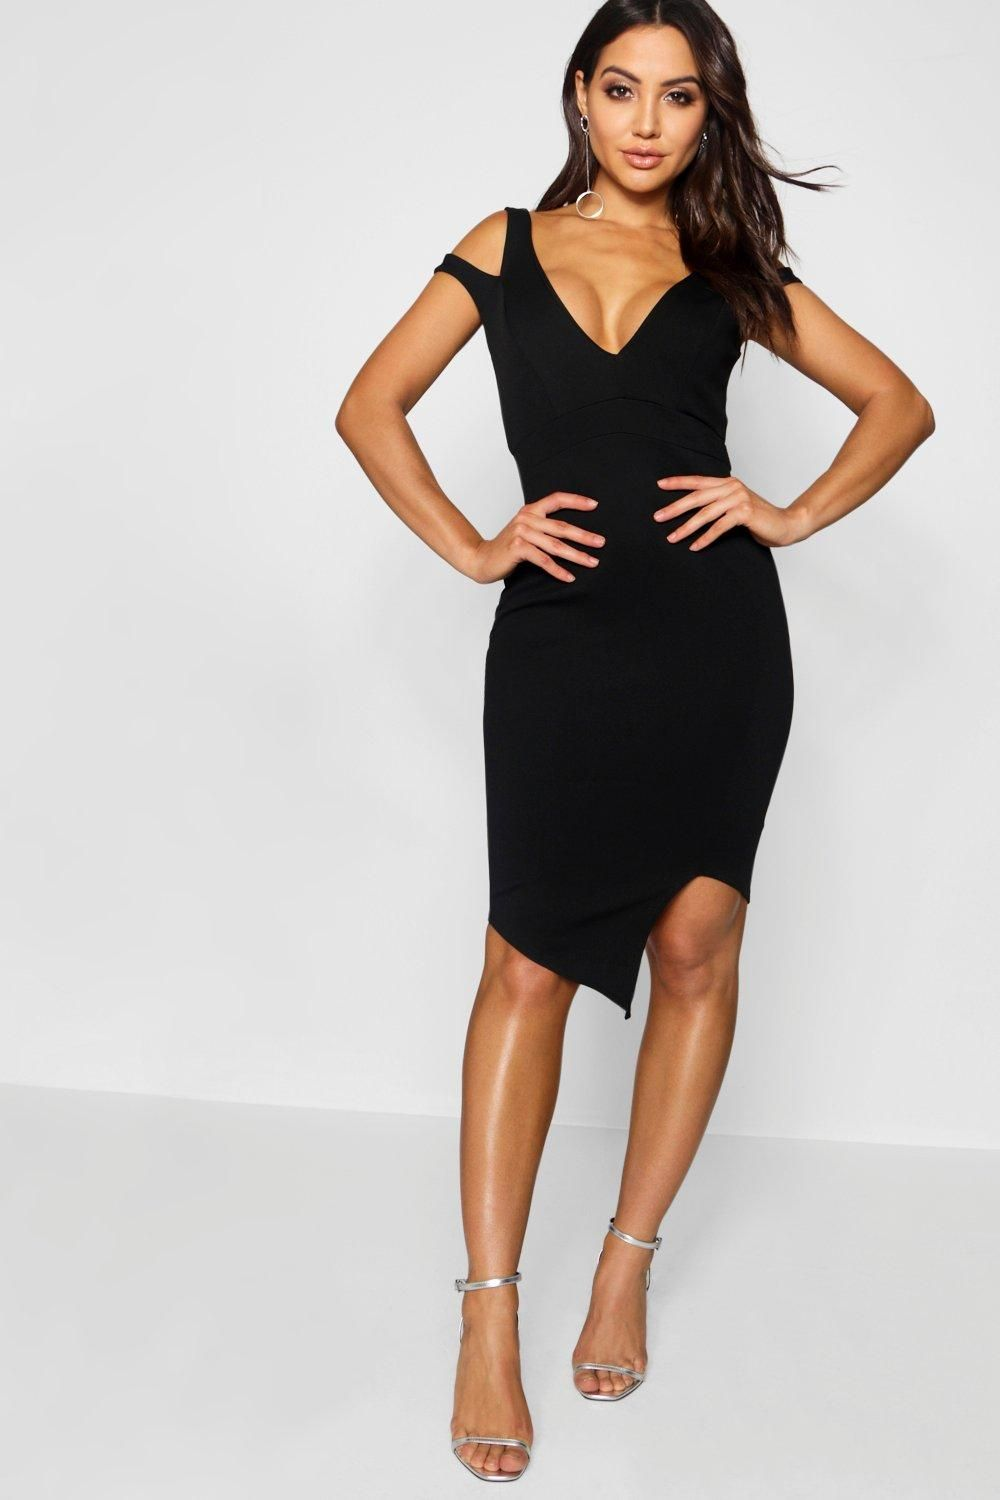 eb7bb7a5b4 Click here to find out about the Cut Out Asymmetric Bodycon Dress from  Boohoo, part of our latest Dresses collection ready to shop online today!